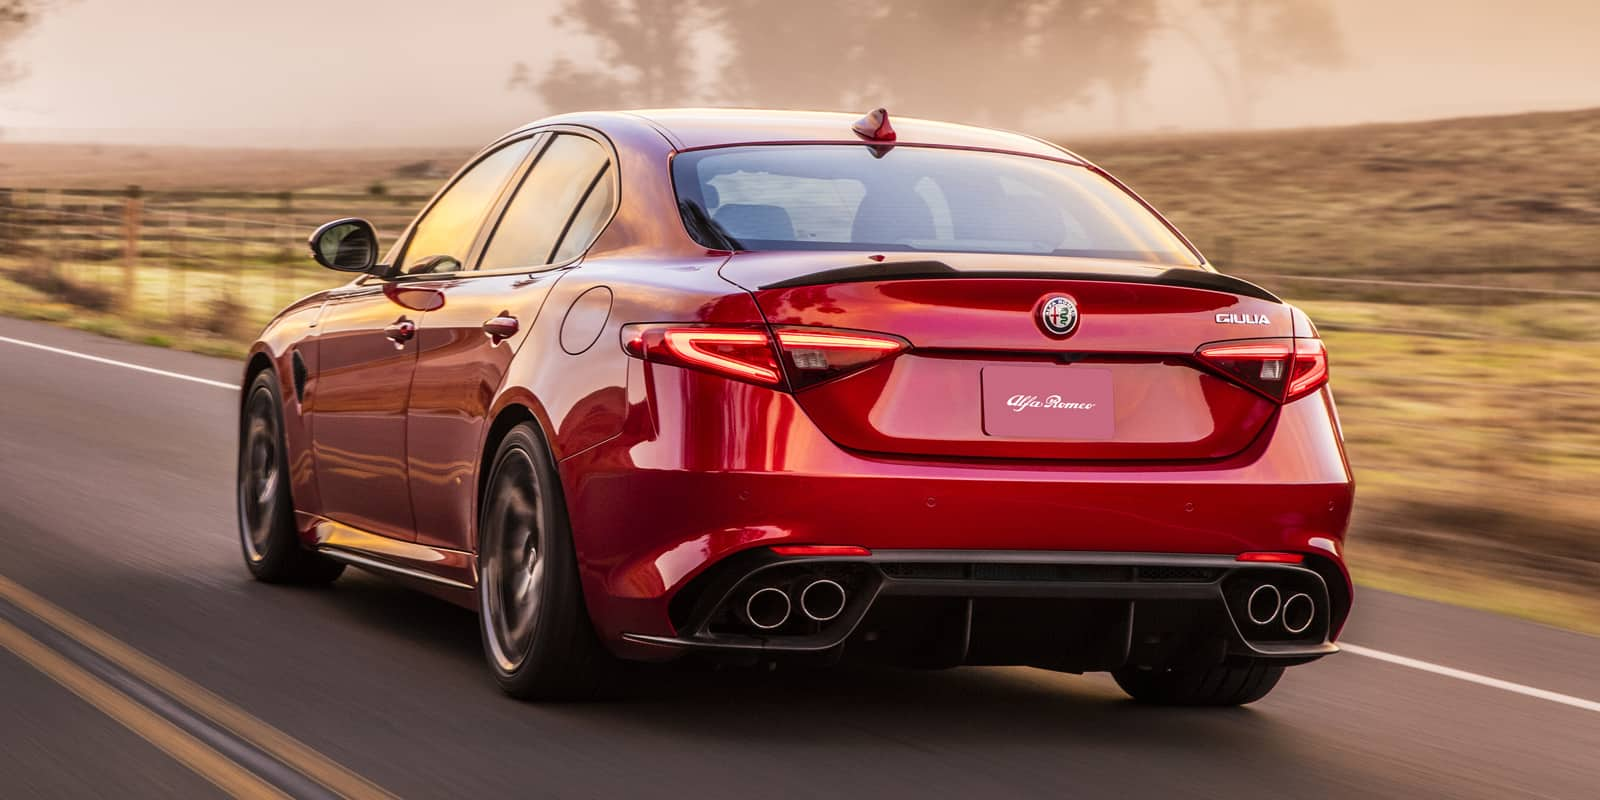 Permalink to Alfa Romeo Cars Usa